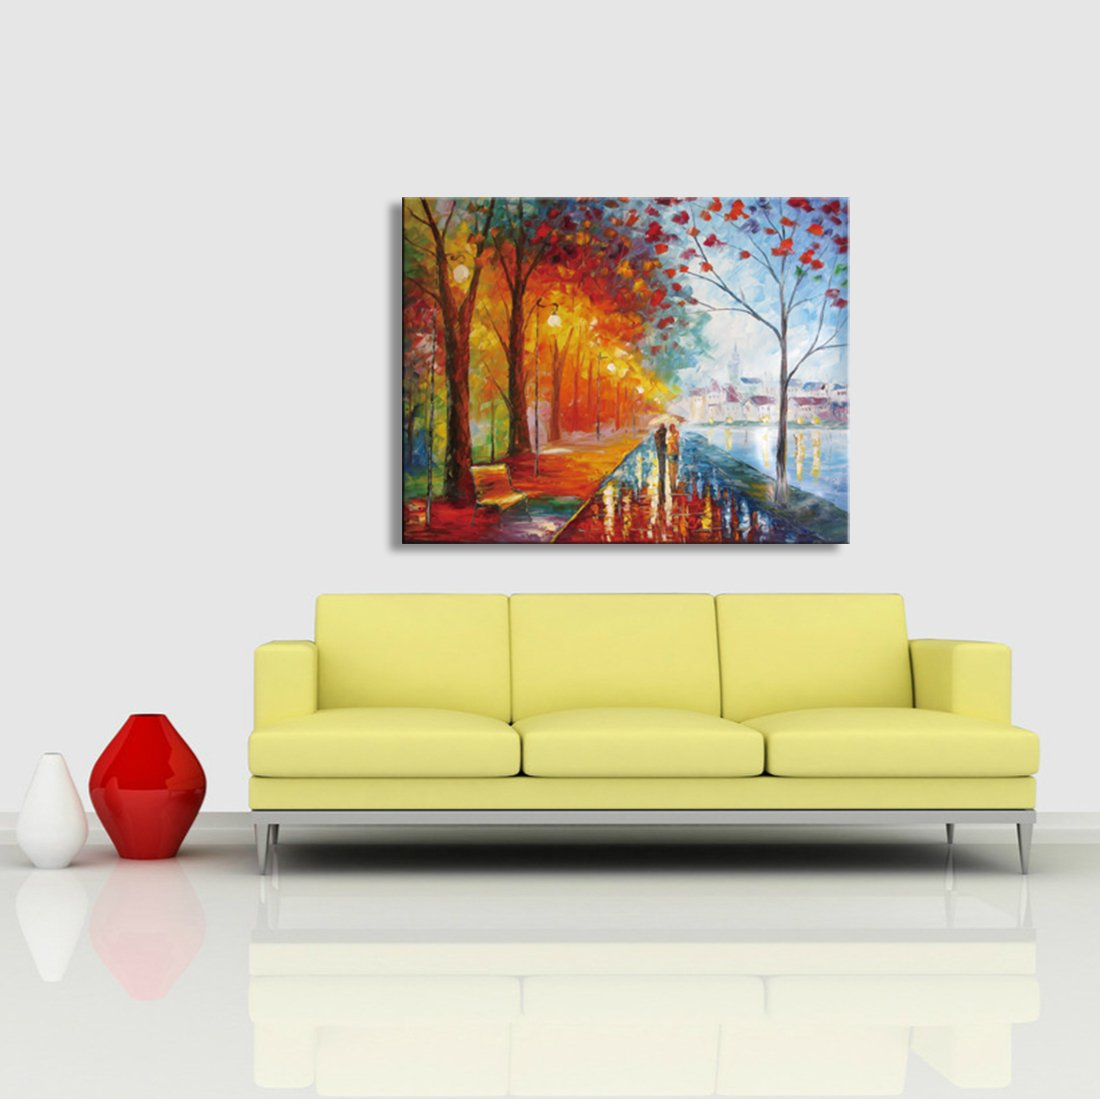 Amazon.com: Canvas Wall Art Palette Knife Abstract Modern Oil ...